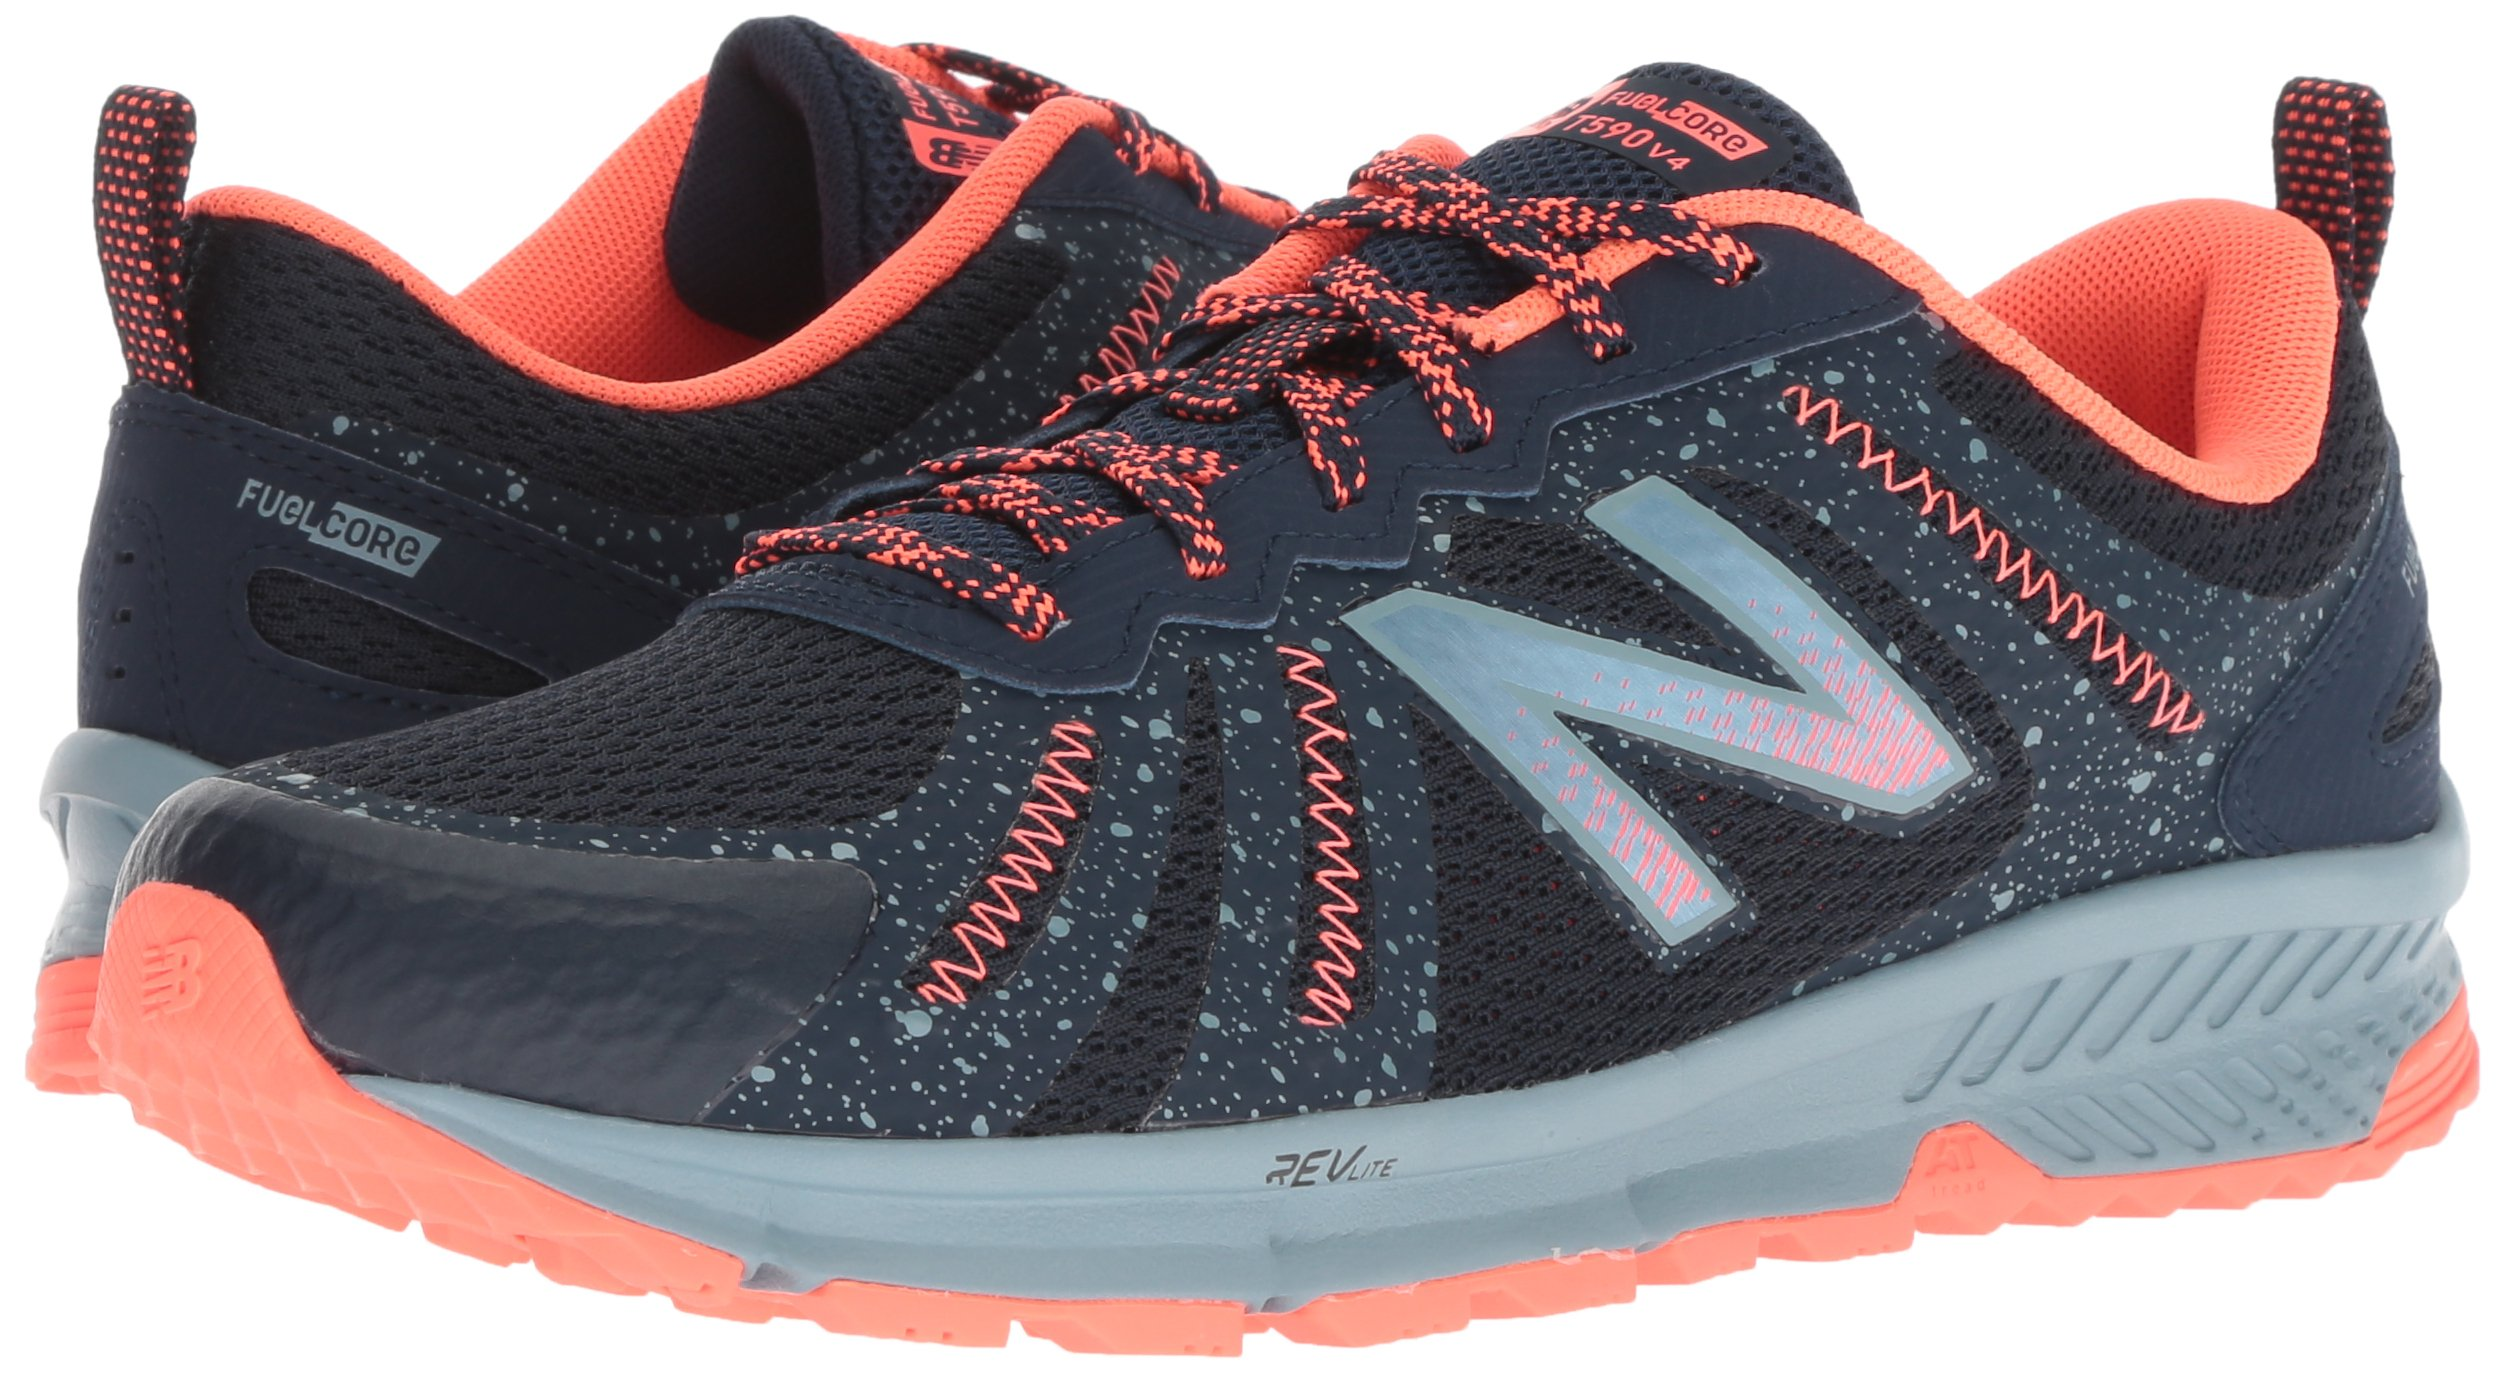 New Balance Women's 590v4 FuelCore Trail Running Shoe, Galaxy, 5.5 B US by New Balance (Image #5)